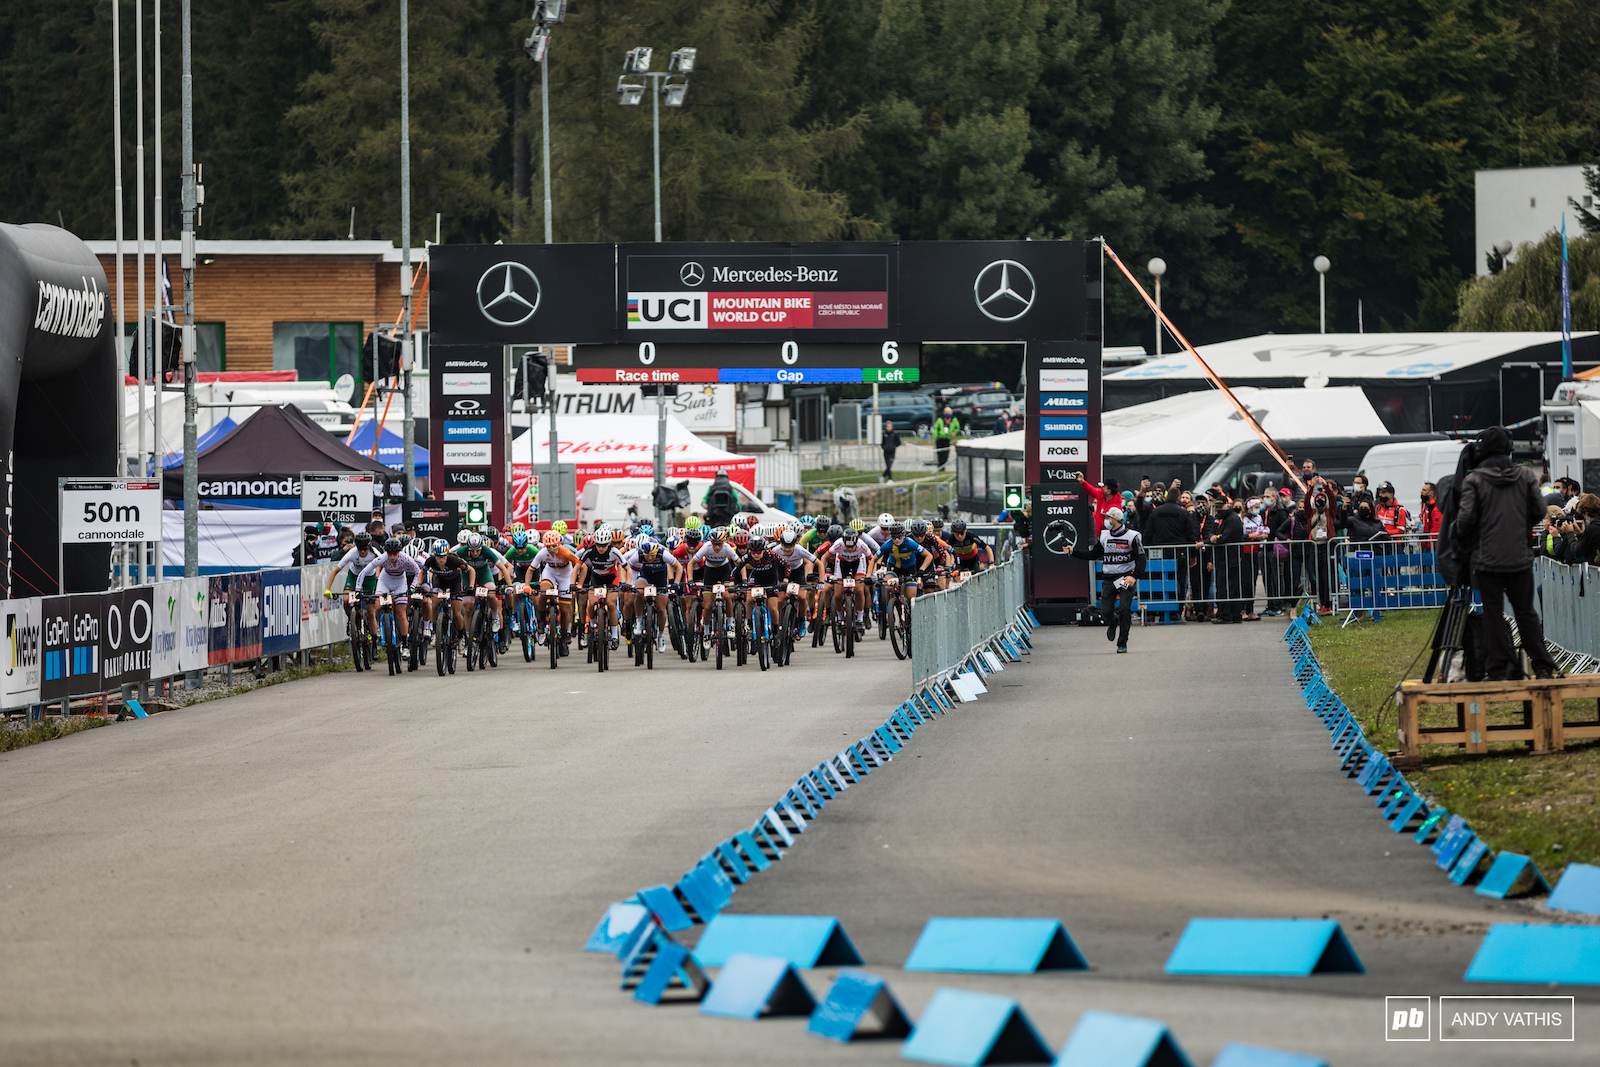 The first elite XCO race of 2020 is a go.